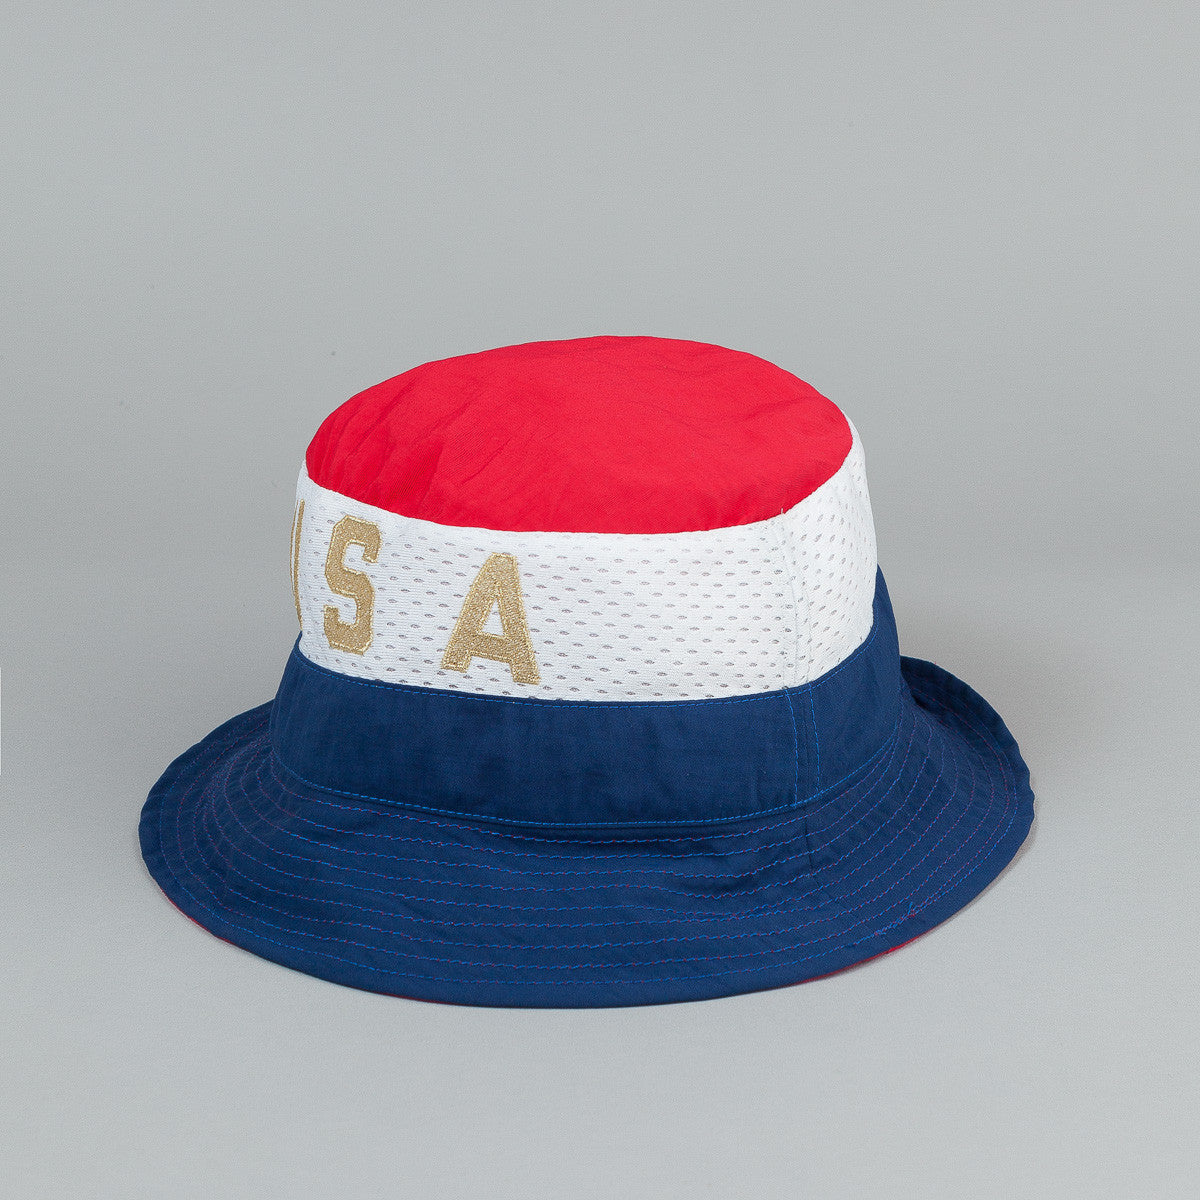 The Decades Bicentennial Bucket Hat